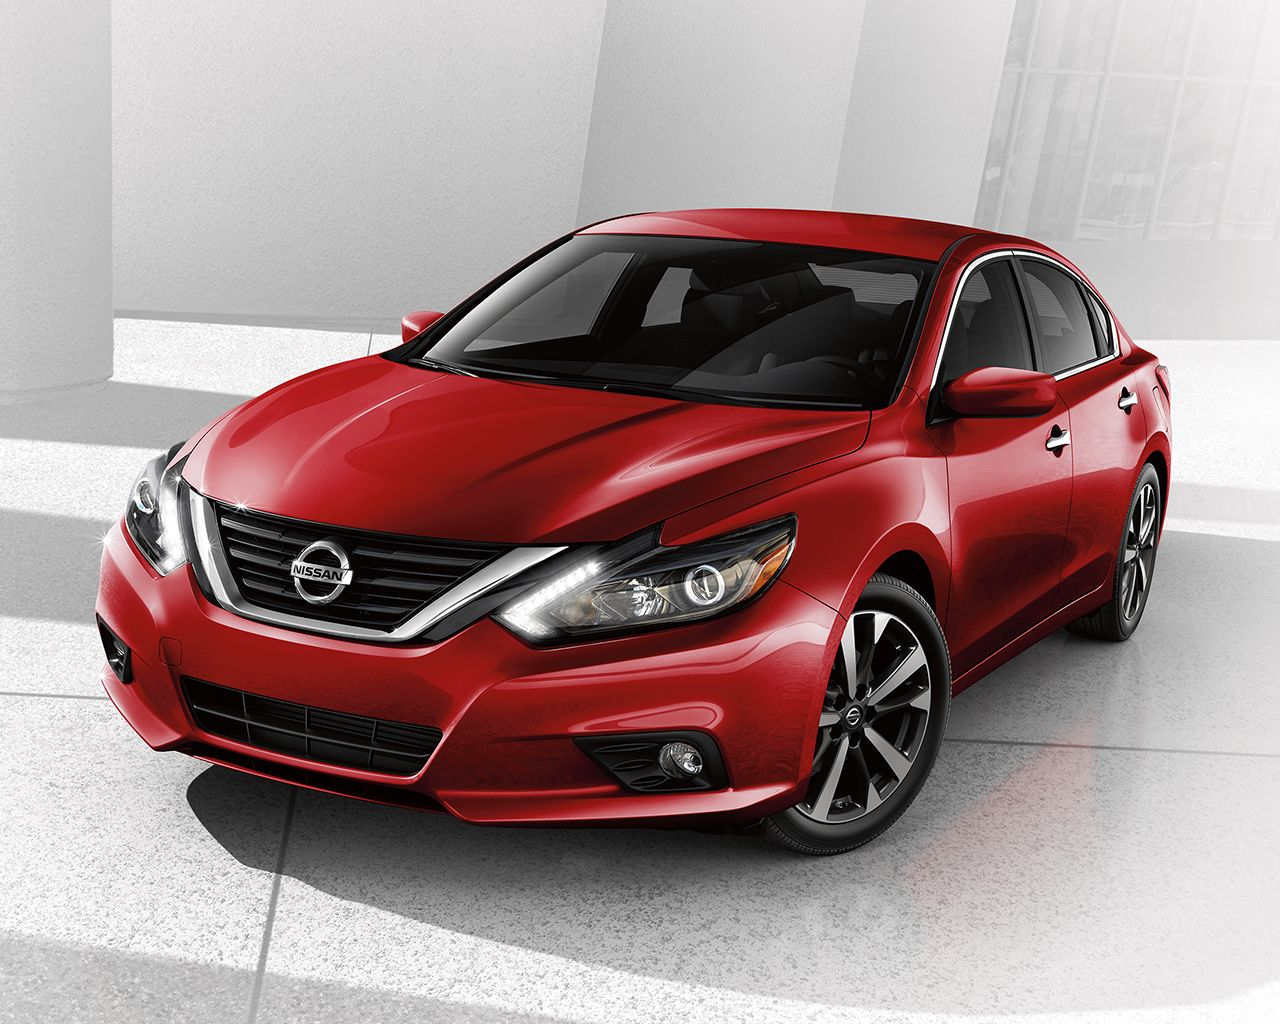 2017 nissan altima sedan front side view shown in cayenne red with v